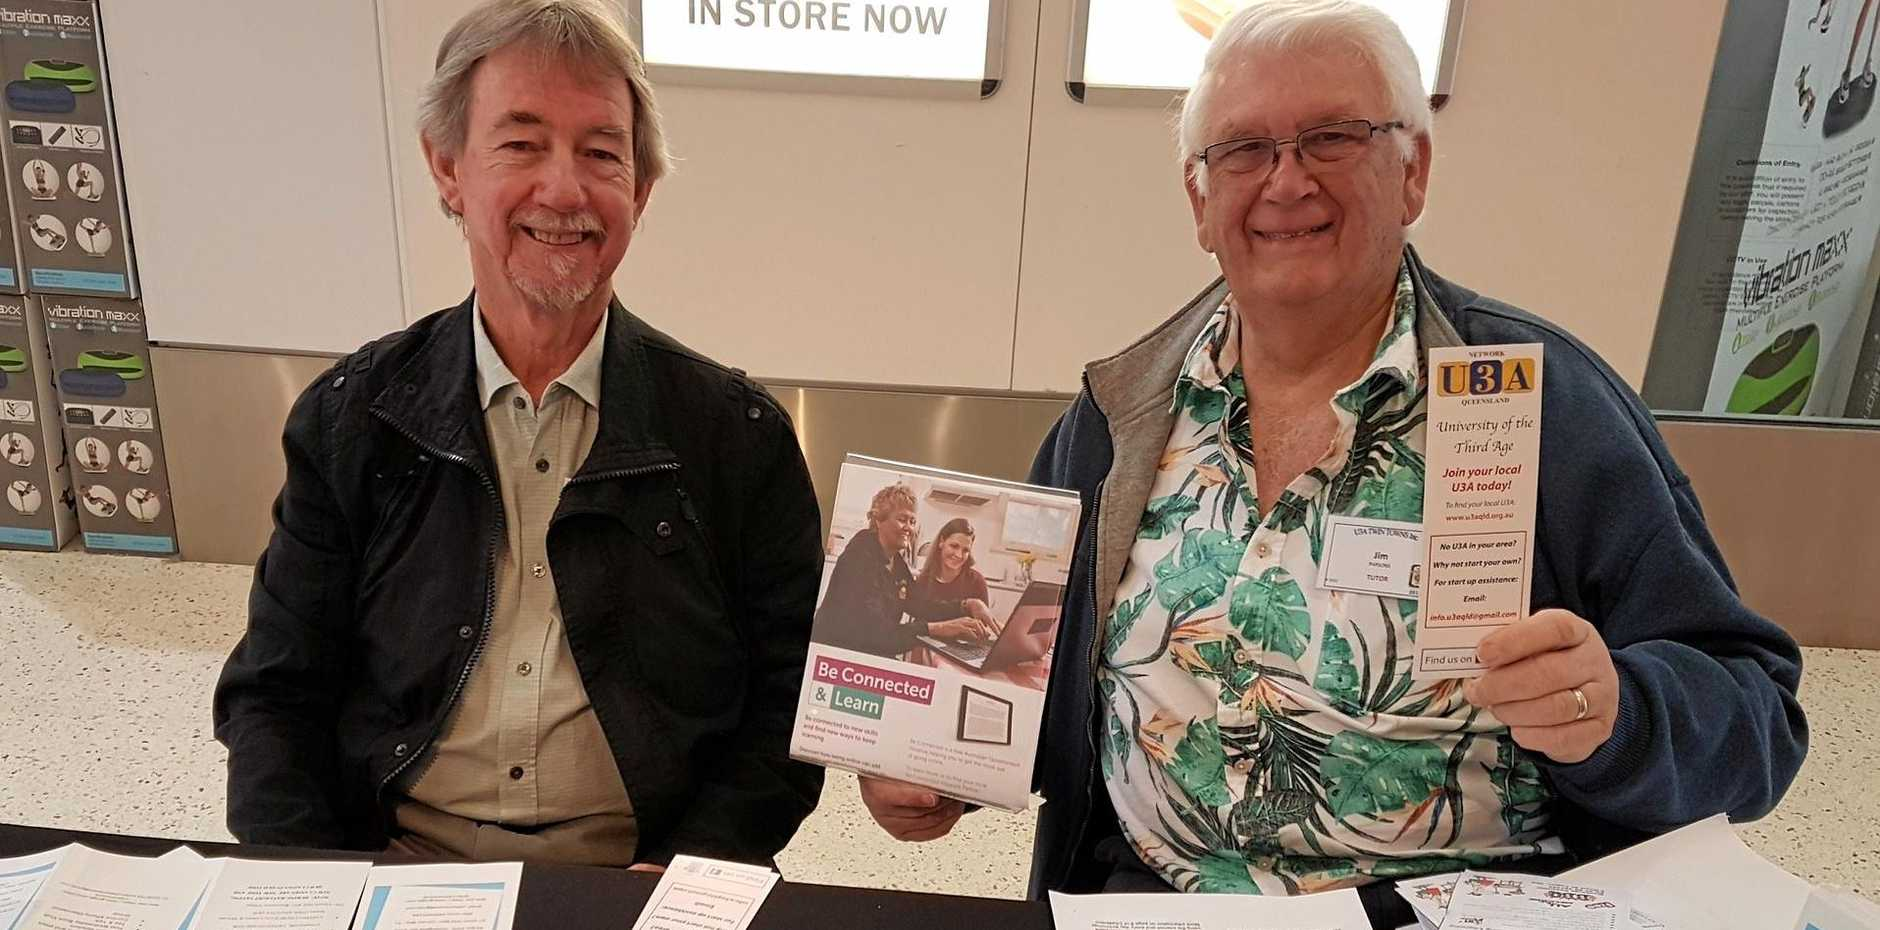 Members of U3A Twin Towns, Author and Educator Jim Parsons and public speaker and tutor Dennis Wallis were busy organising a free barbecue, sponsored by COTA. For details, phone (07) 5534 7333 or email u3a1office@gmail.com.